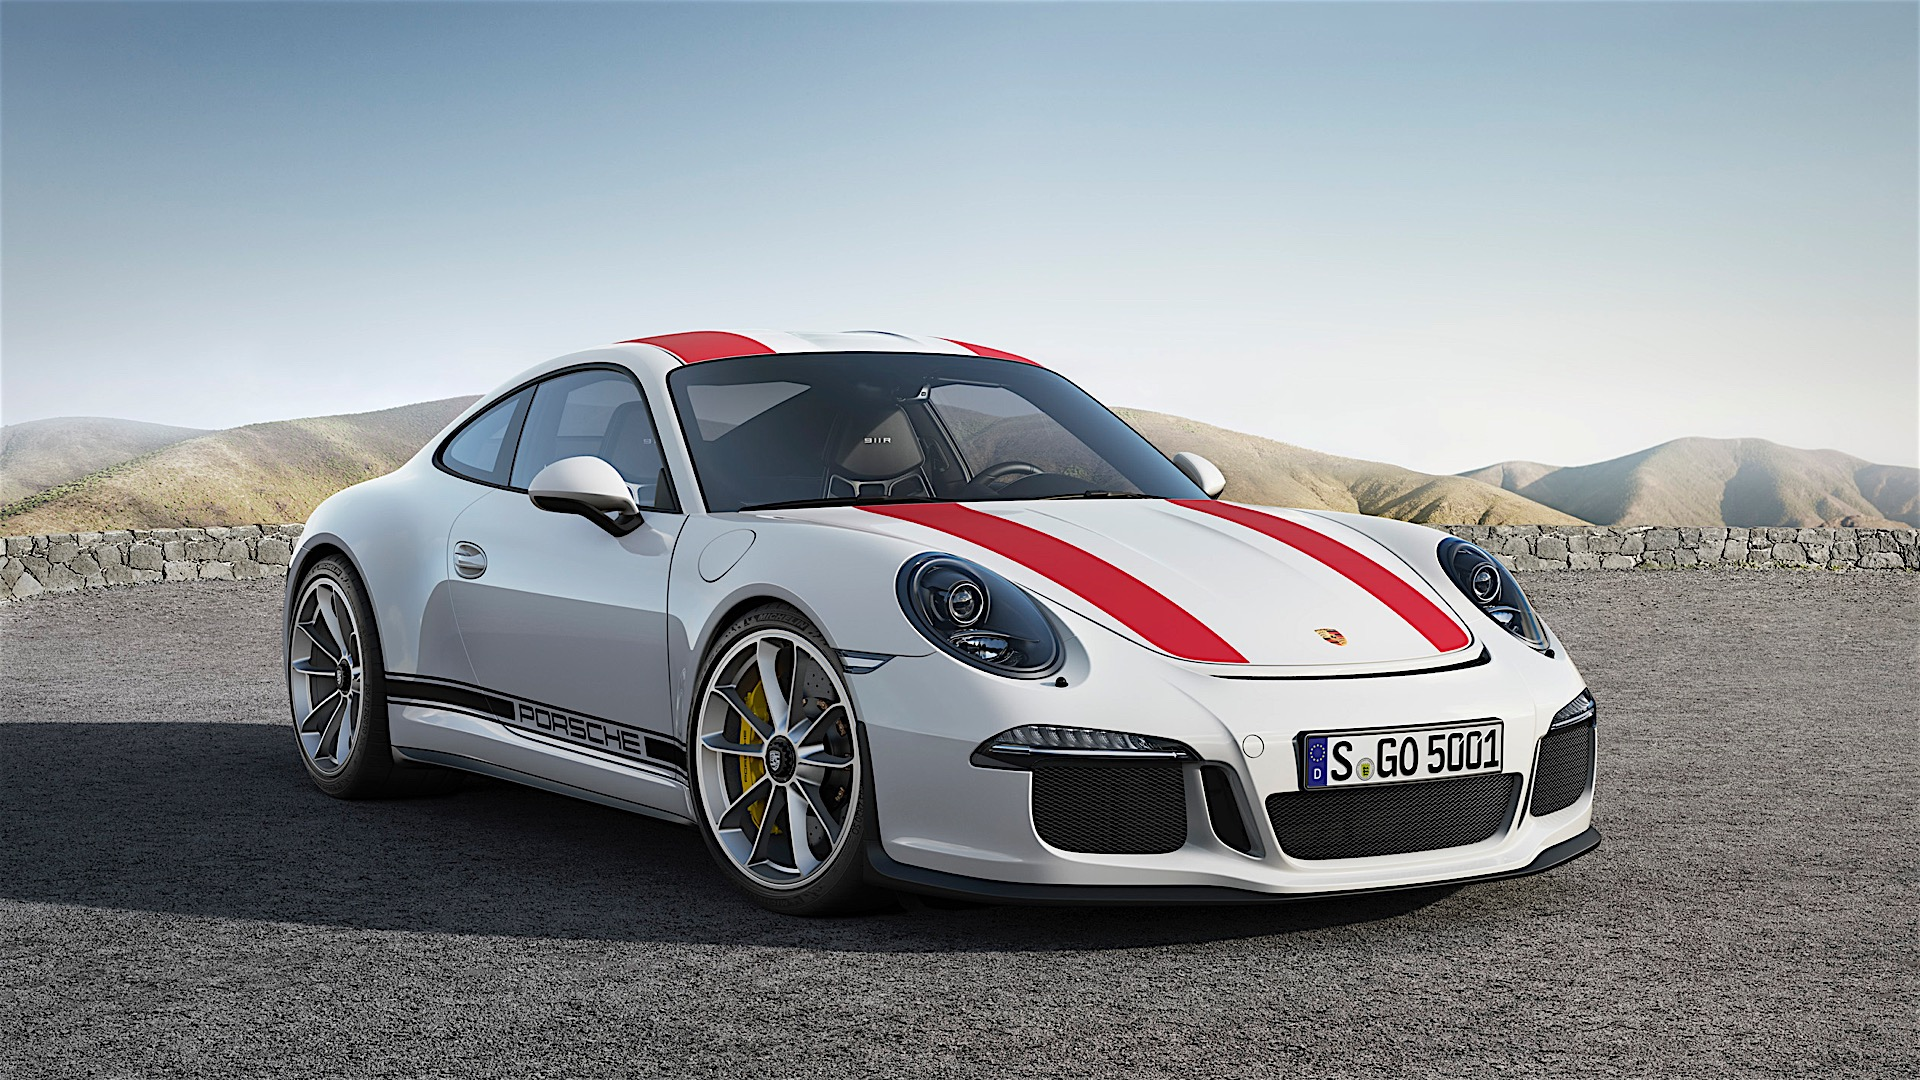 2017 Porsche 911 R Officially Revealed Only 991 Units Will Be Made